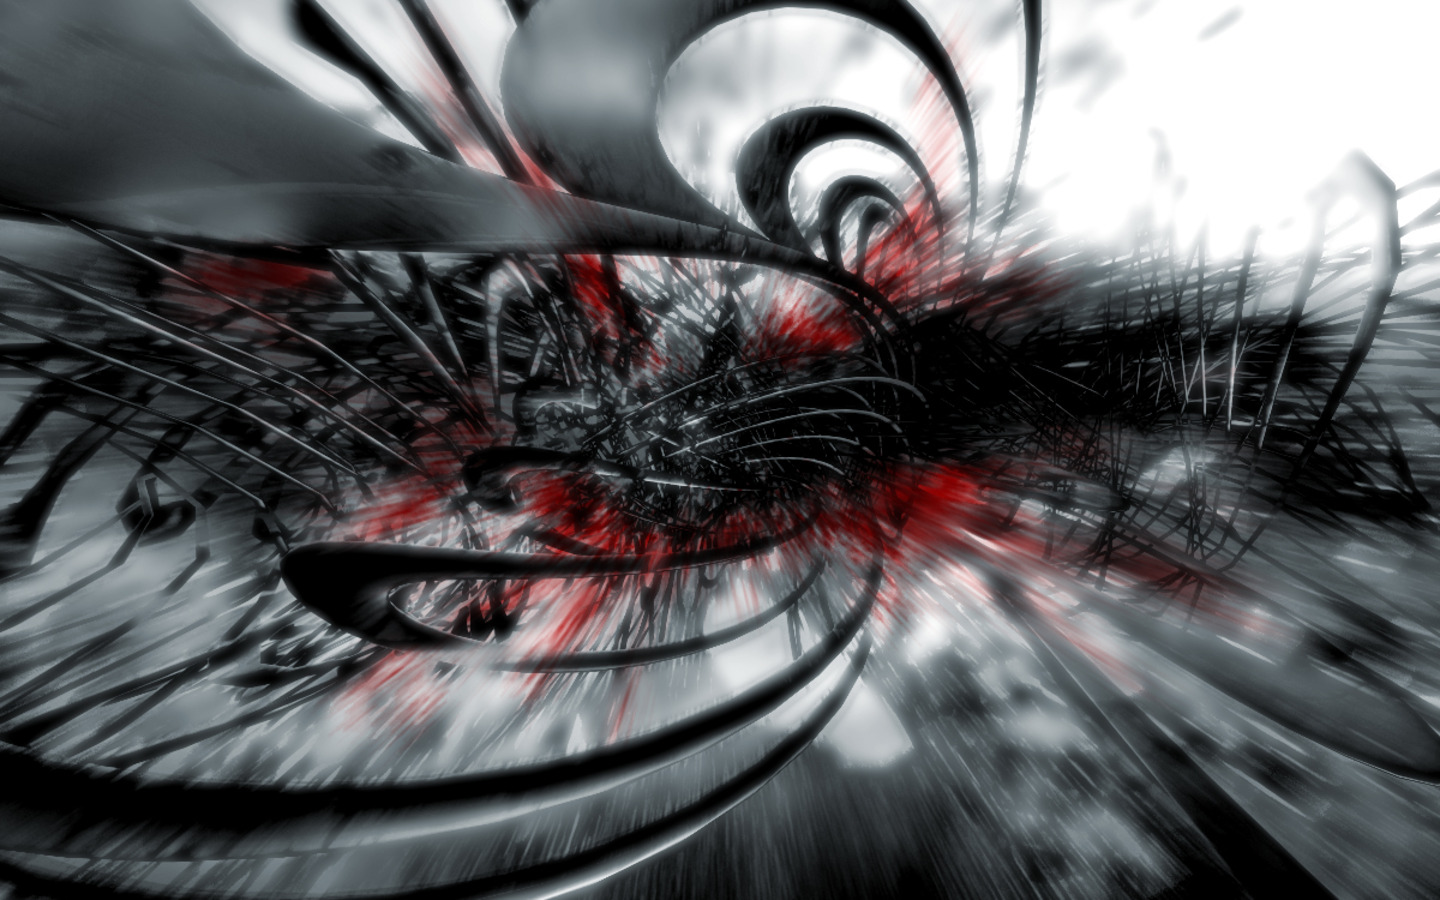 Black Red And White Abstract Wallpaper HD Picture Image Wallsevcom 1440x900